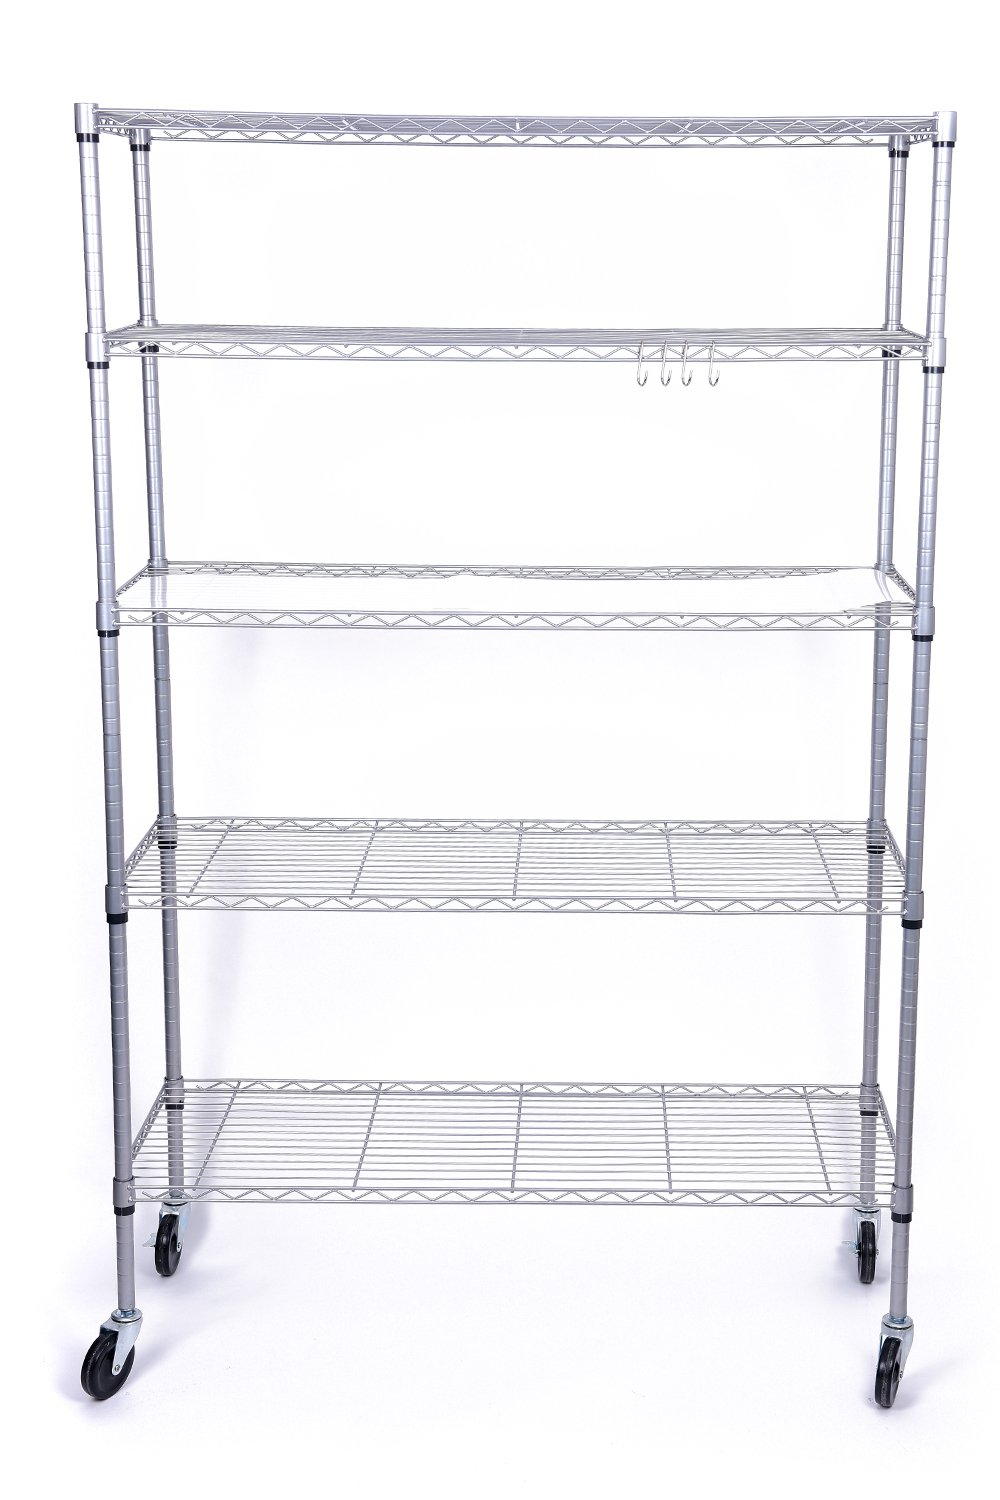 J.S. Hanger 5-Tier Heavy Duty Storage Shelf Adjustable Wire Shelving Rack, Thicken Tube and Industrial Wheels, Silver